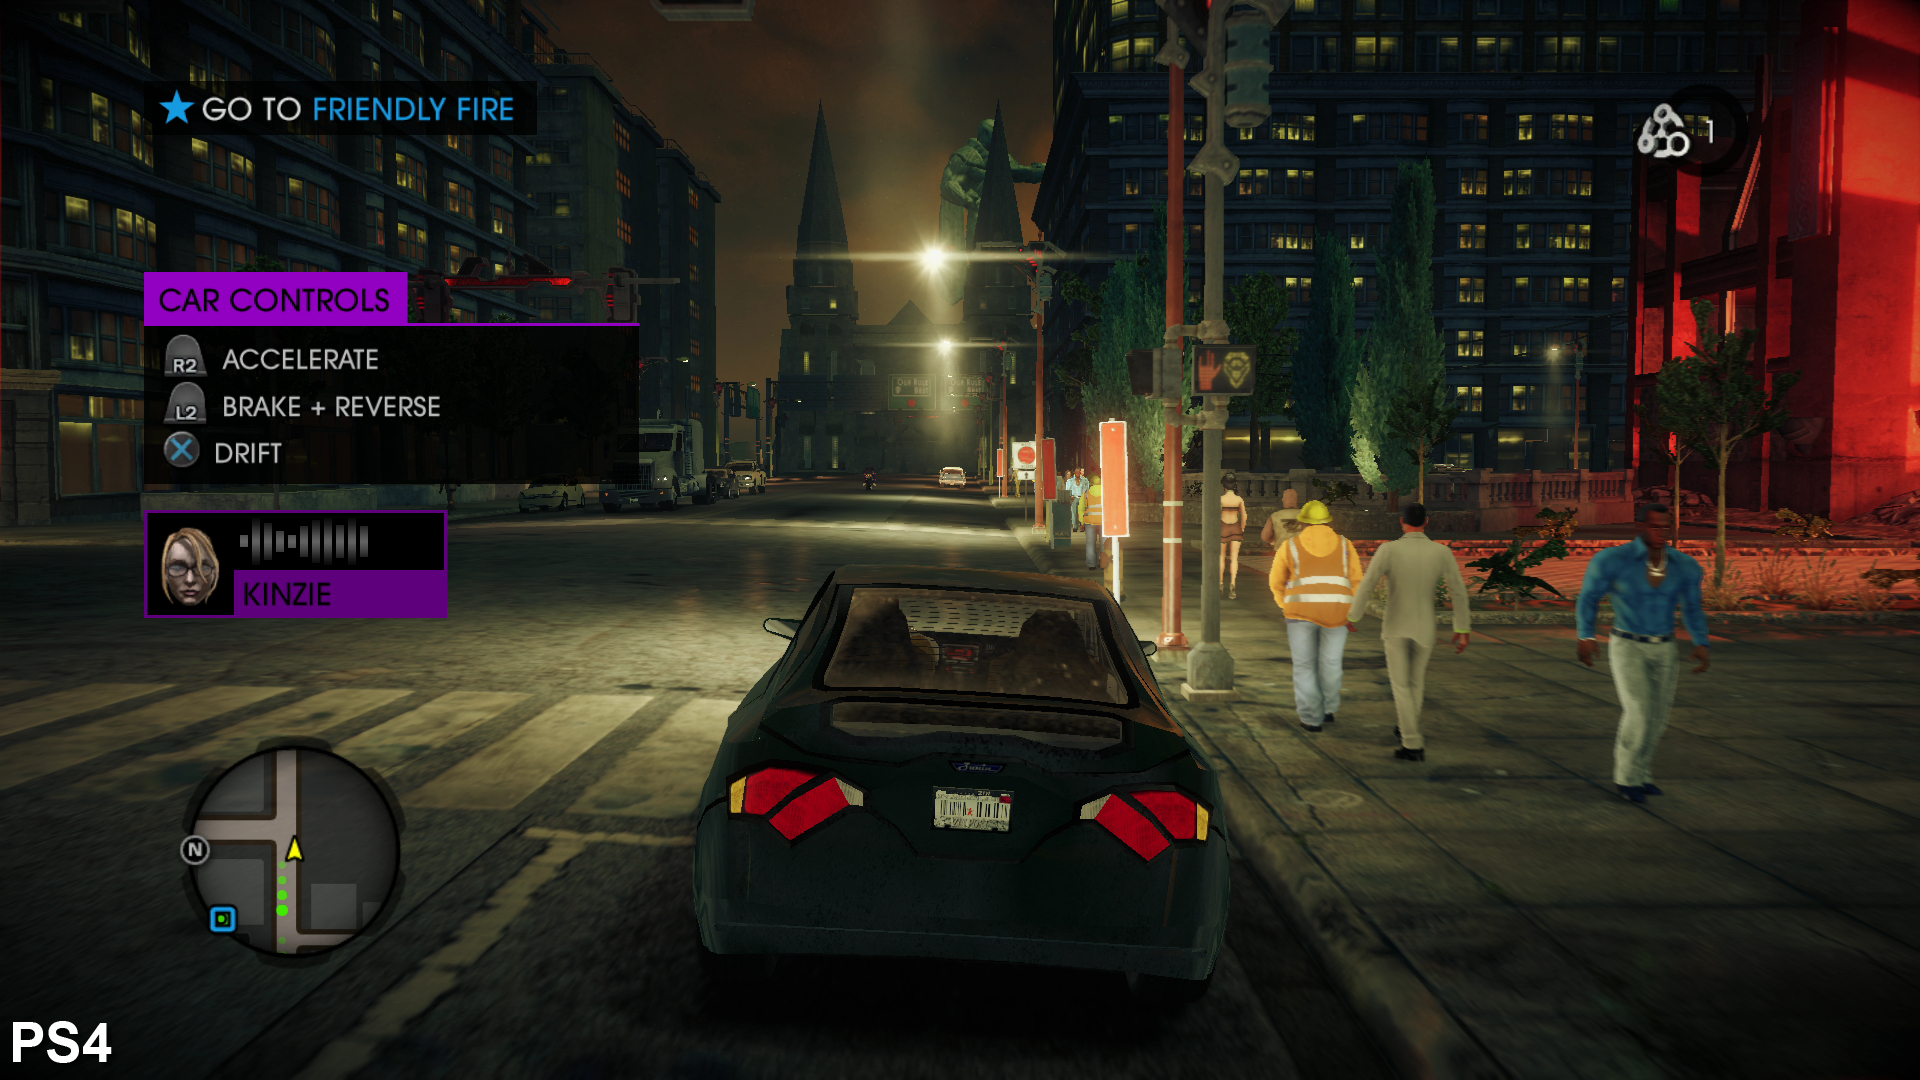 saints row iv matchmaking